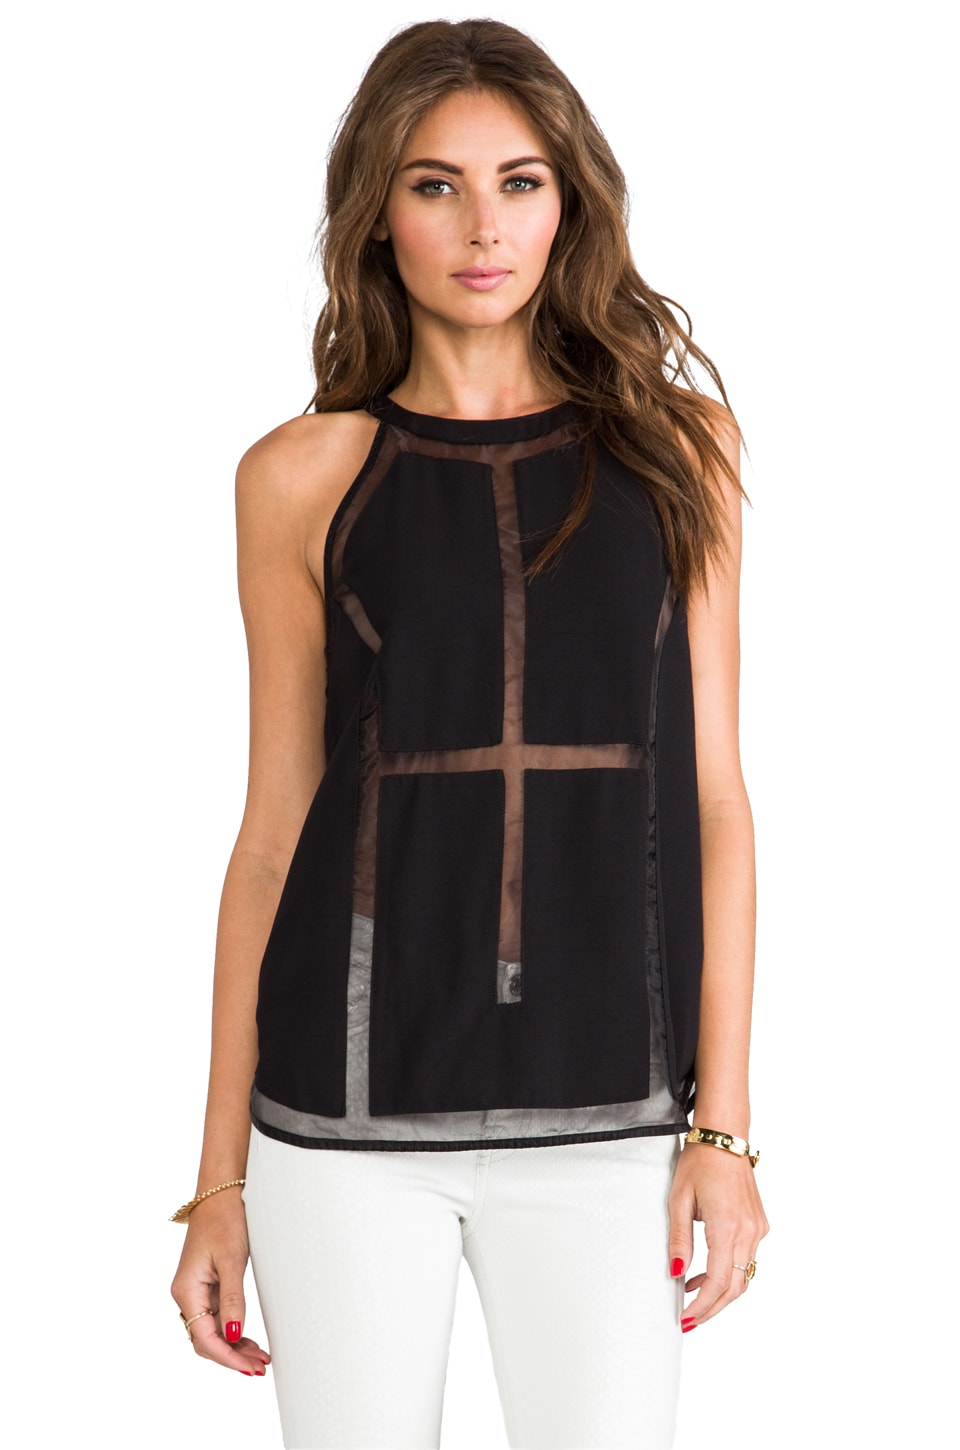 C/MEO Megalomania Top in Black